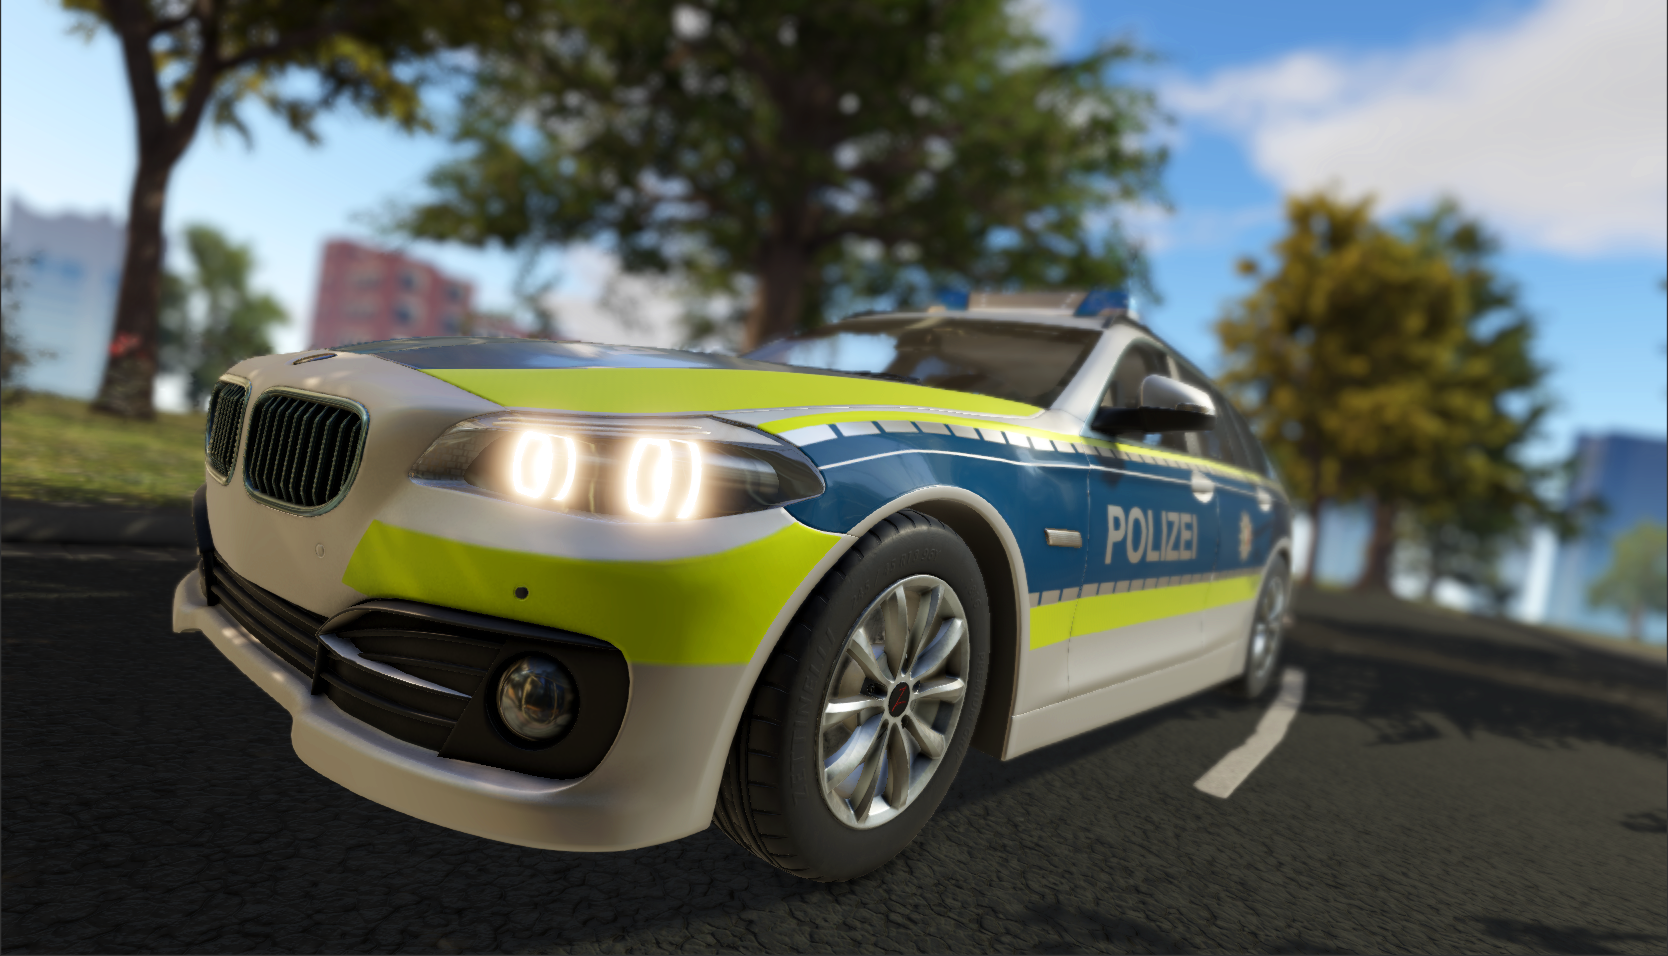 autobahn-police-simulator-road-creation-tool